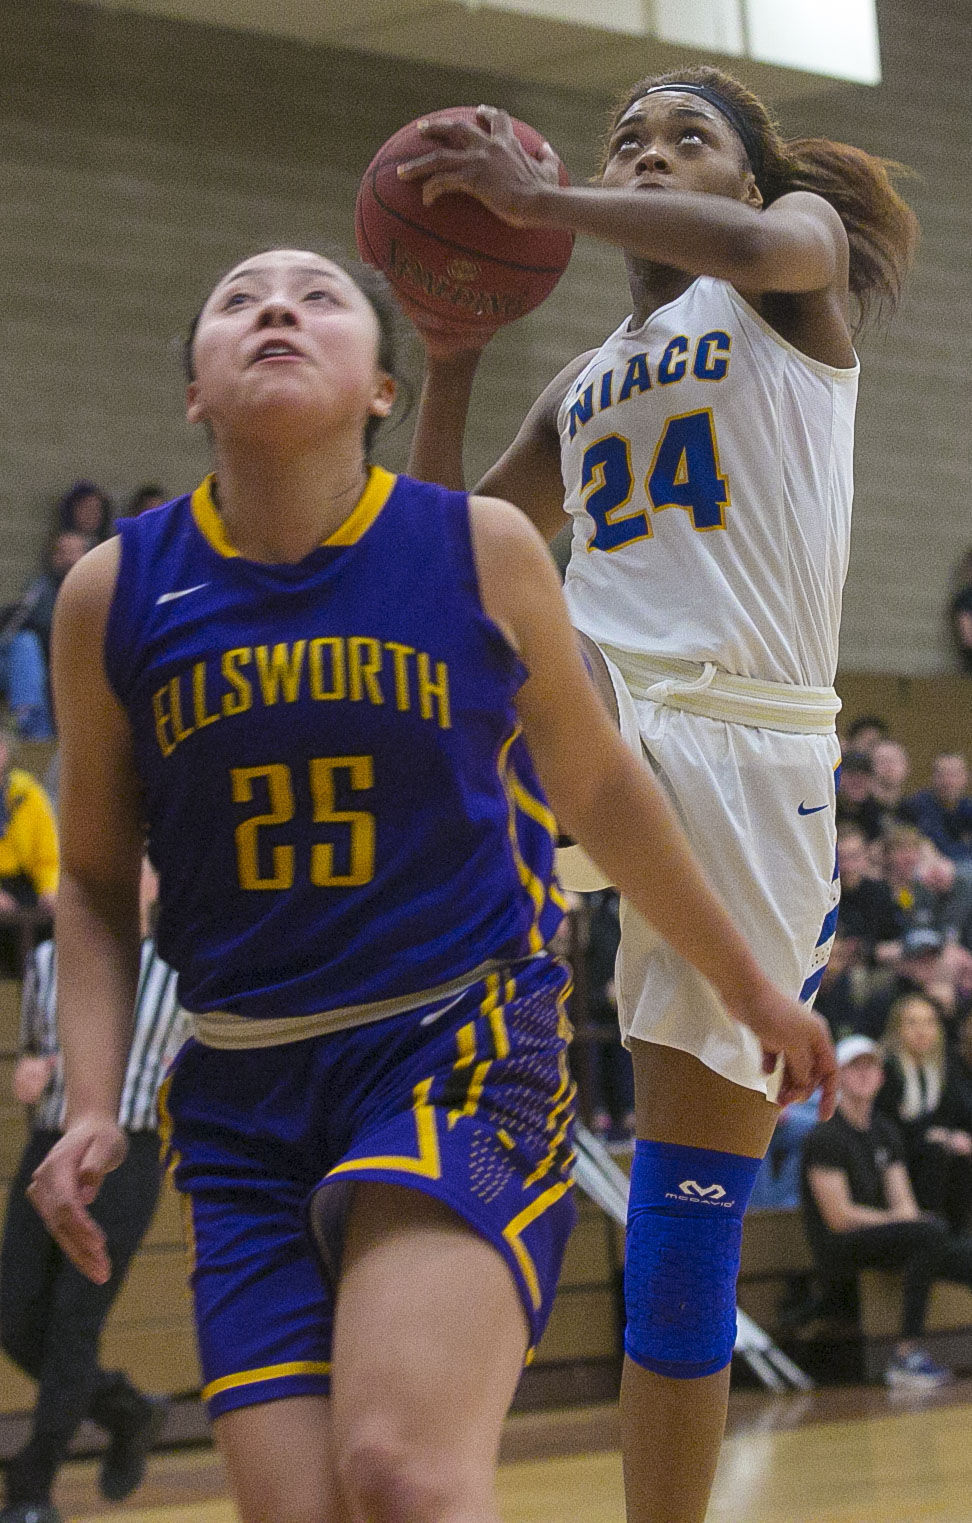 WBBall NIACC vs. Ellsworth 2